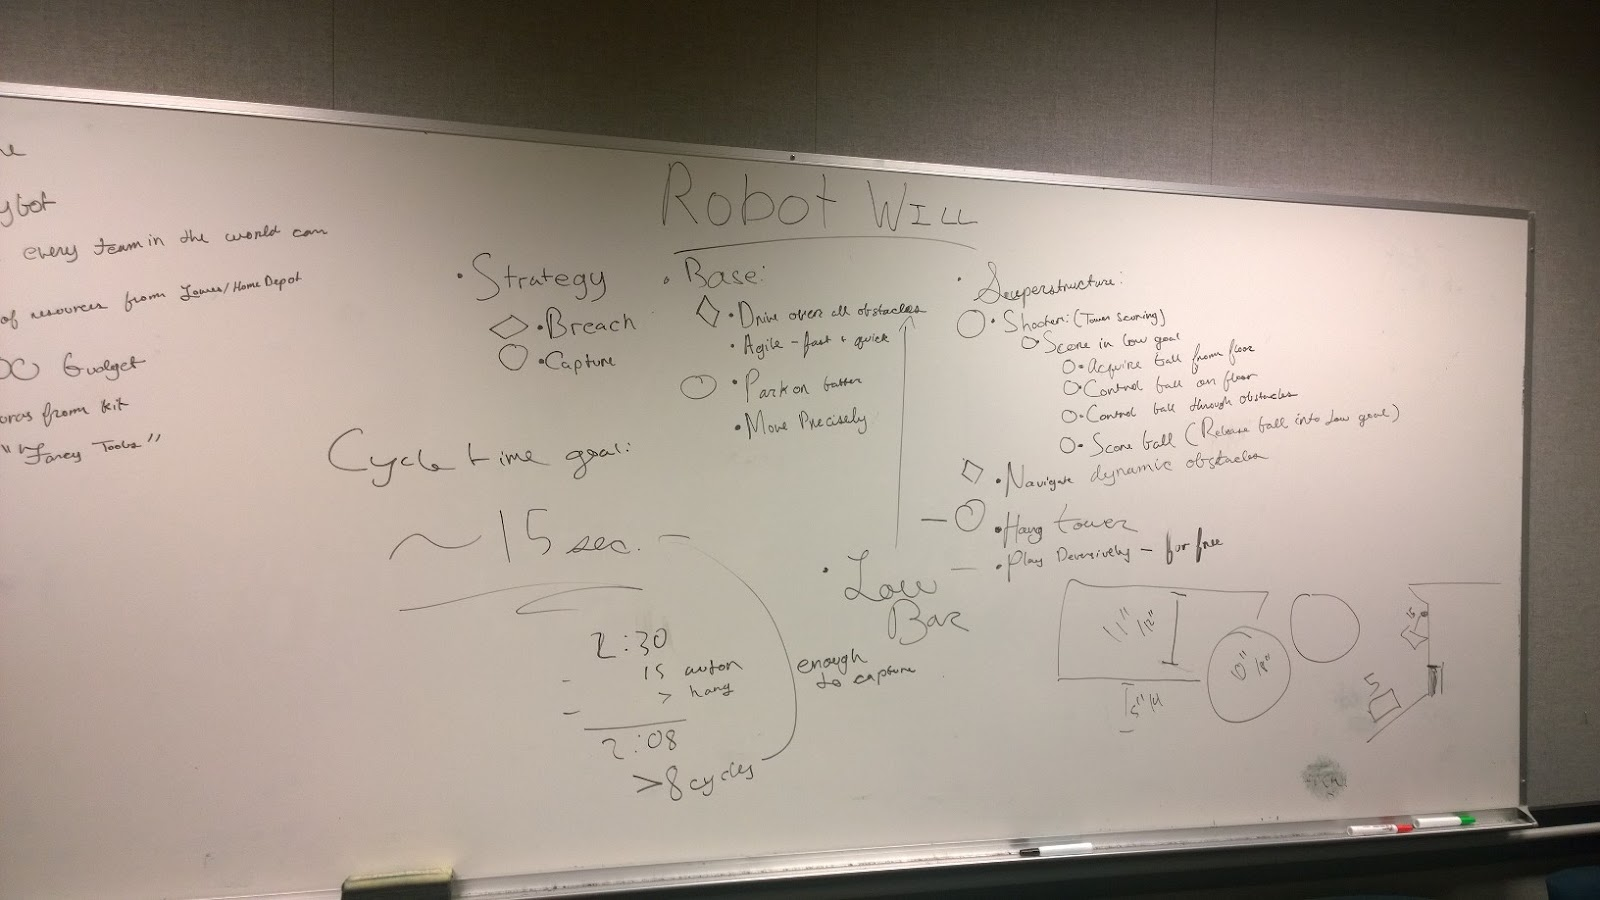 Robonauts Team 118 Houston Tx Diagram Of Pullback Or Angle And Launch For Catapult The Robot Will